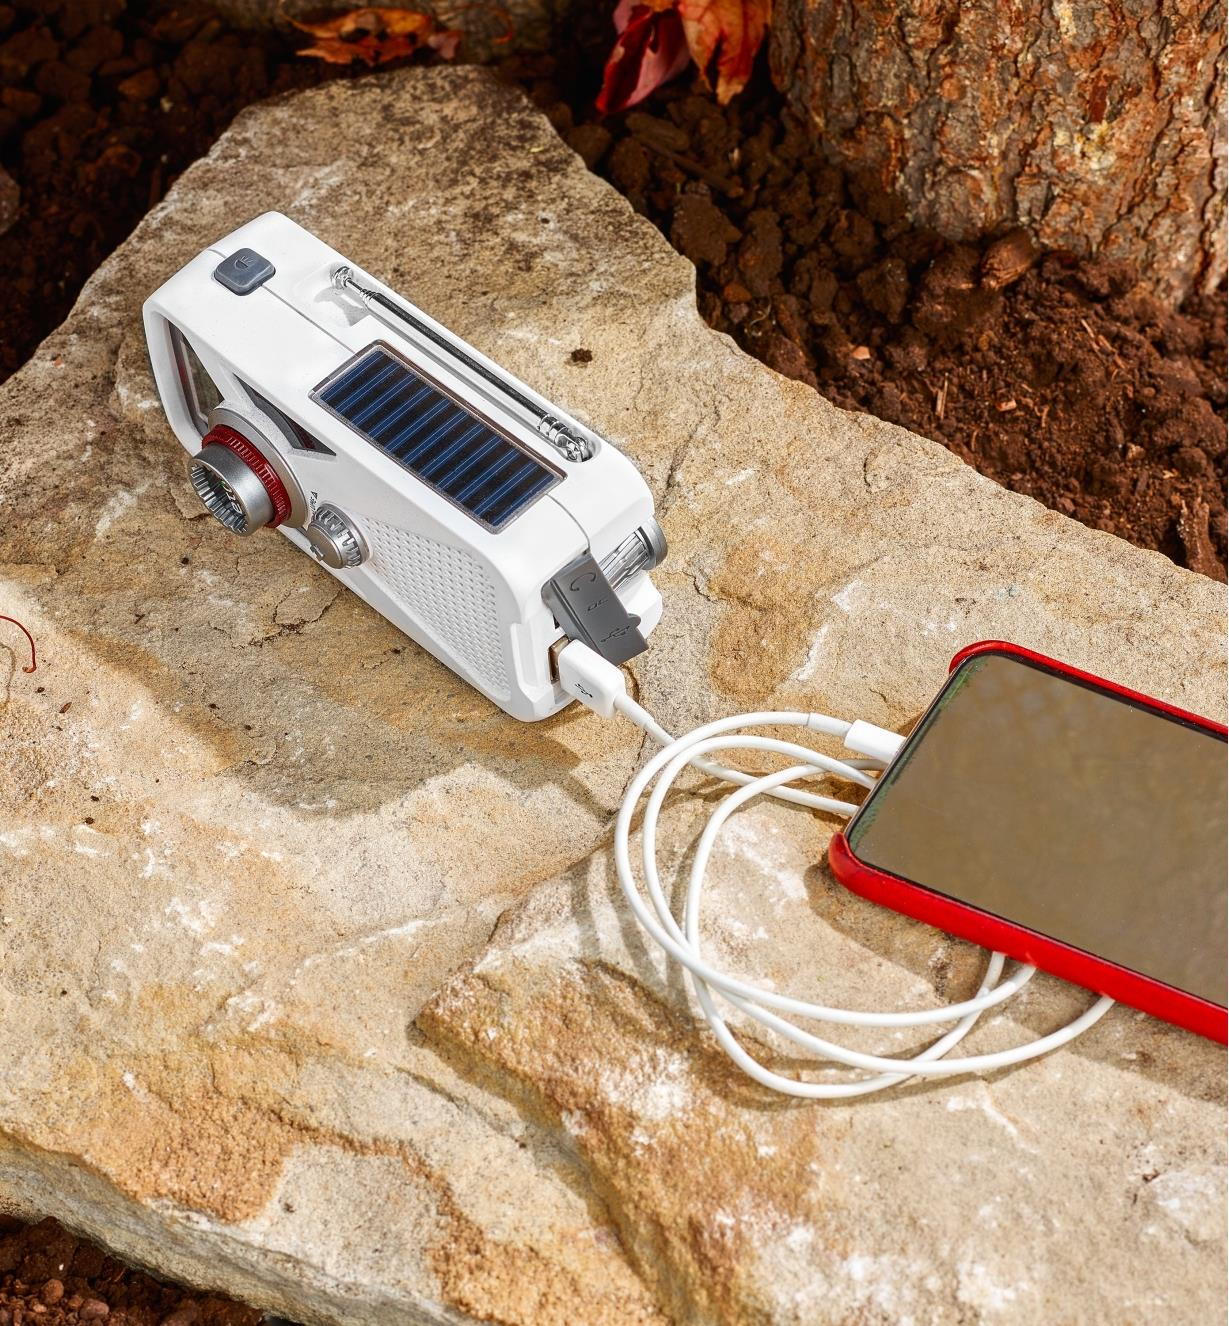 Eton emergency weather radio using solar power to charge a cell phone